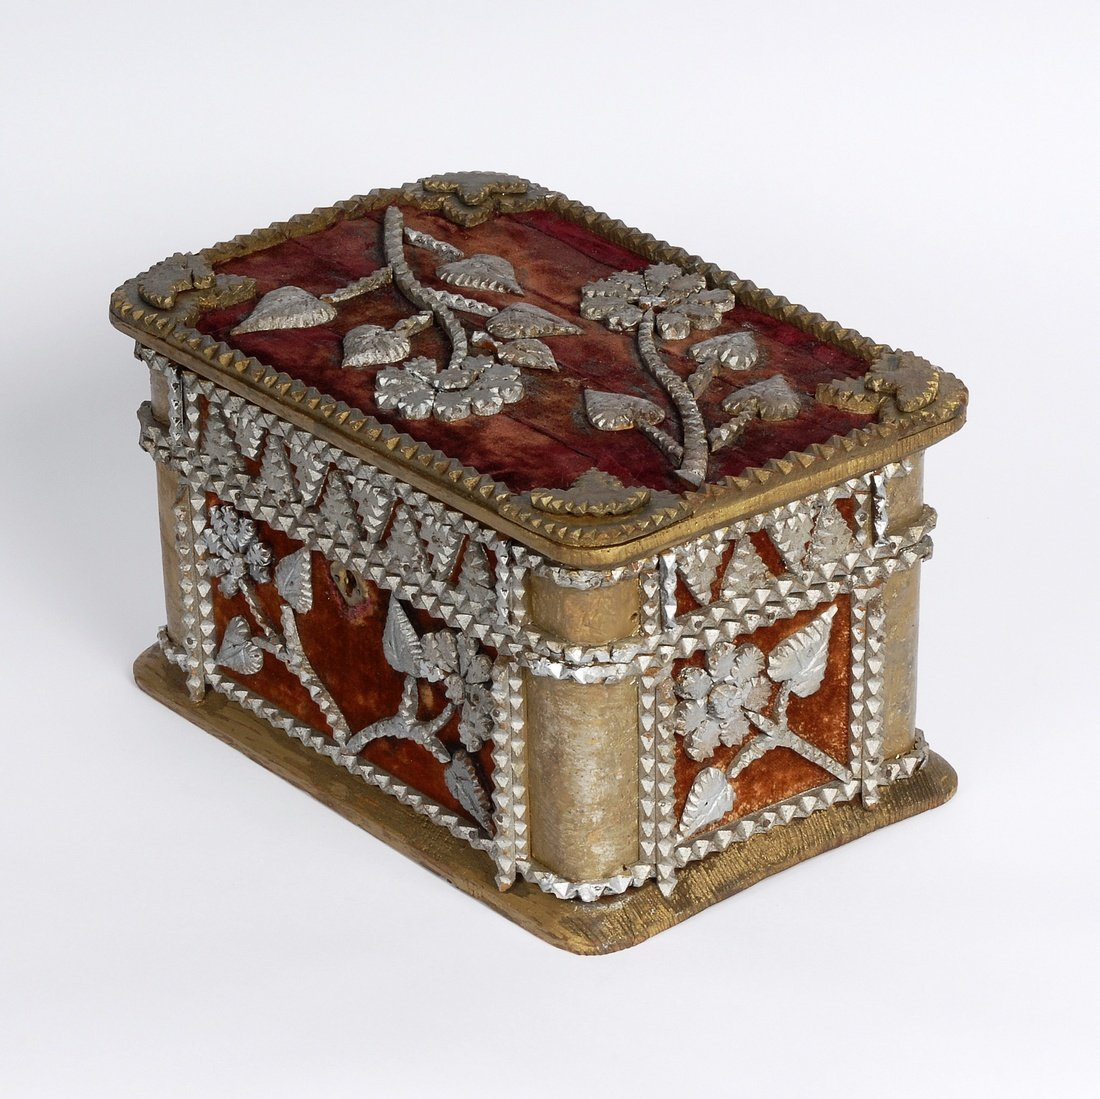 Tramp Art Box with Floral Designs